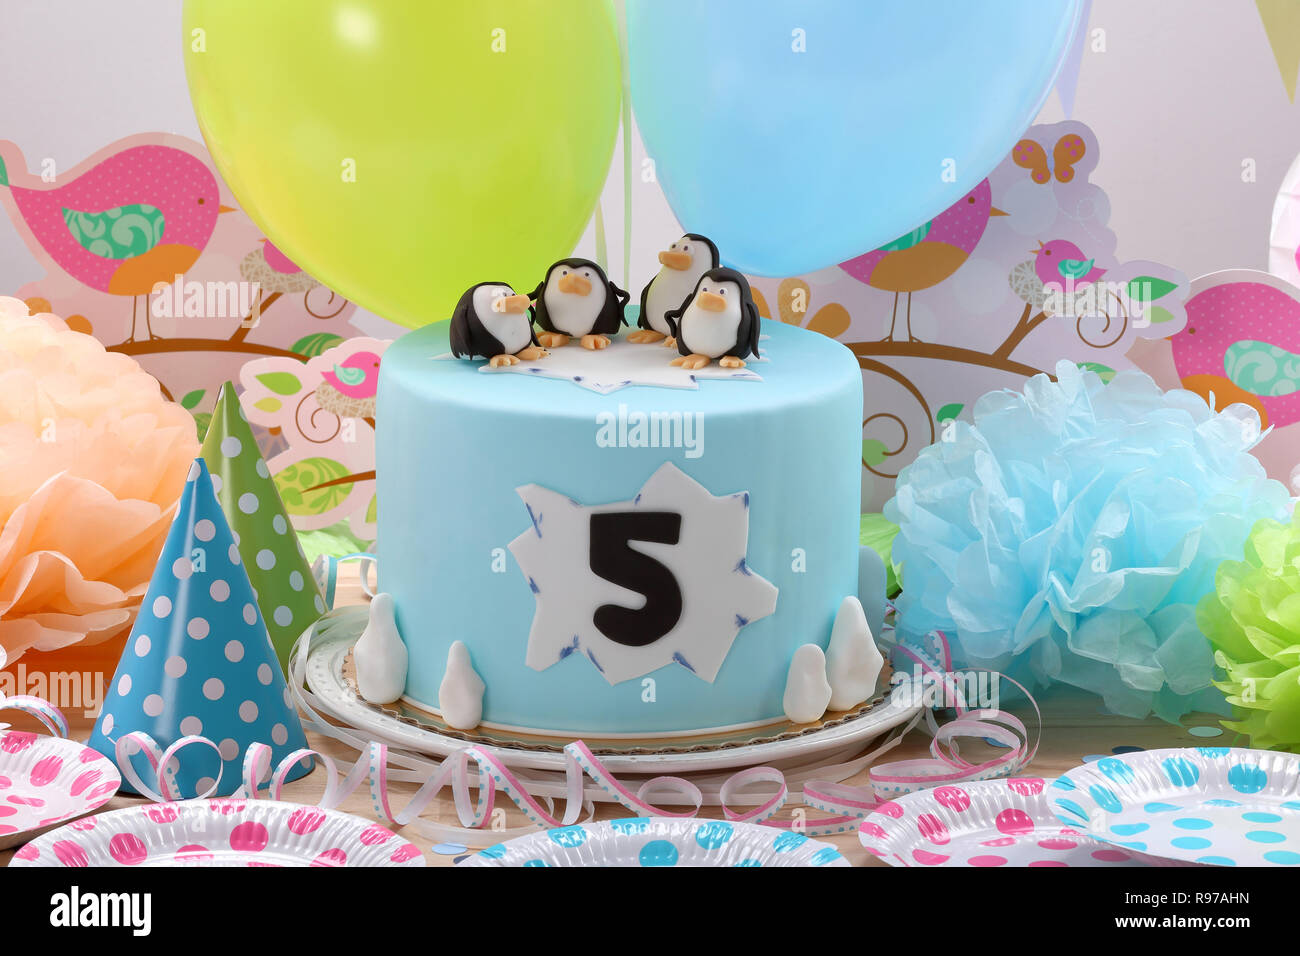 Surprising Birthday Cake With Penguins And Space For Text Stock Photo Funny Birthday Cards Online Unhofree Goldxyz